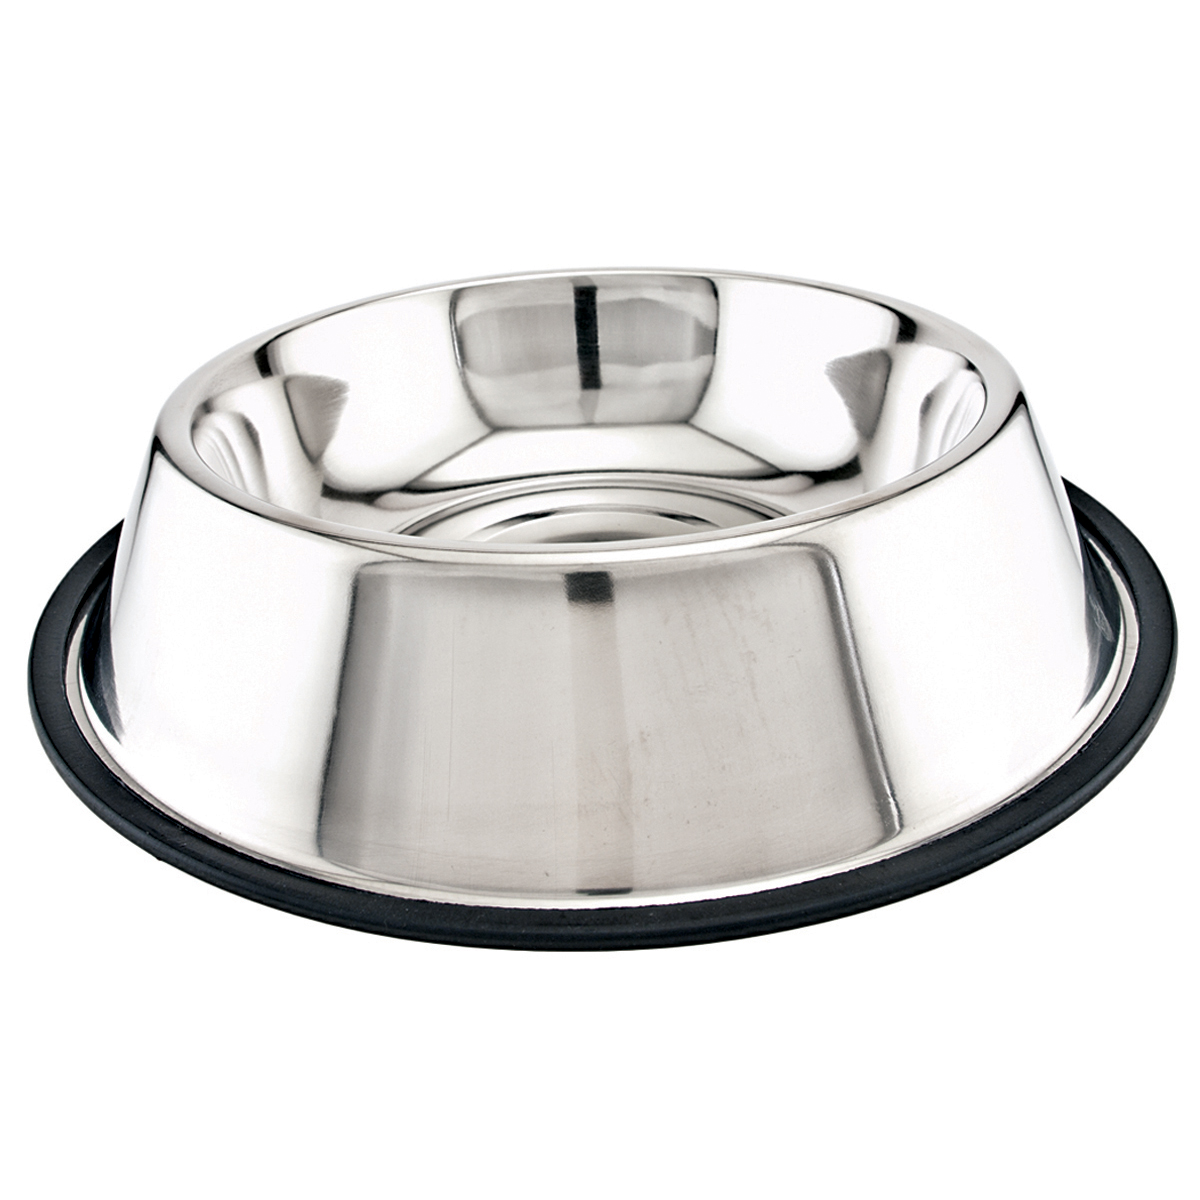 Stainless Steel Non-Skid Dish 64oz- - image 1 of 1